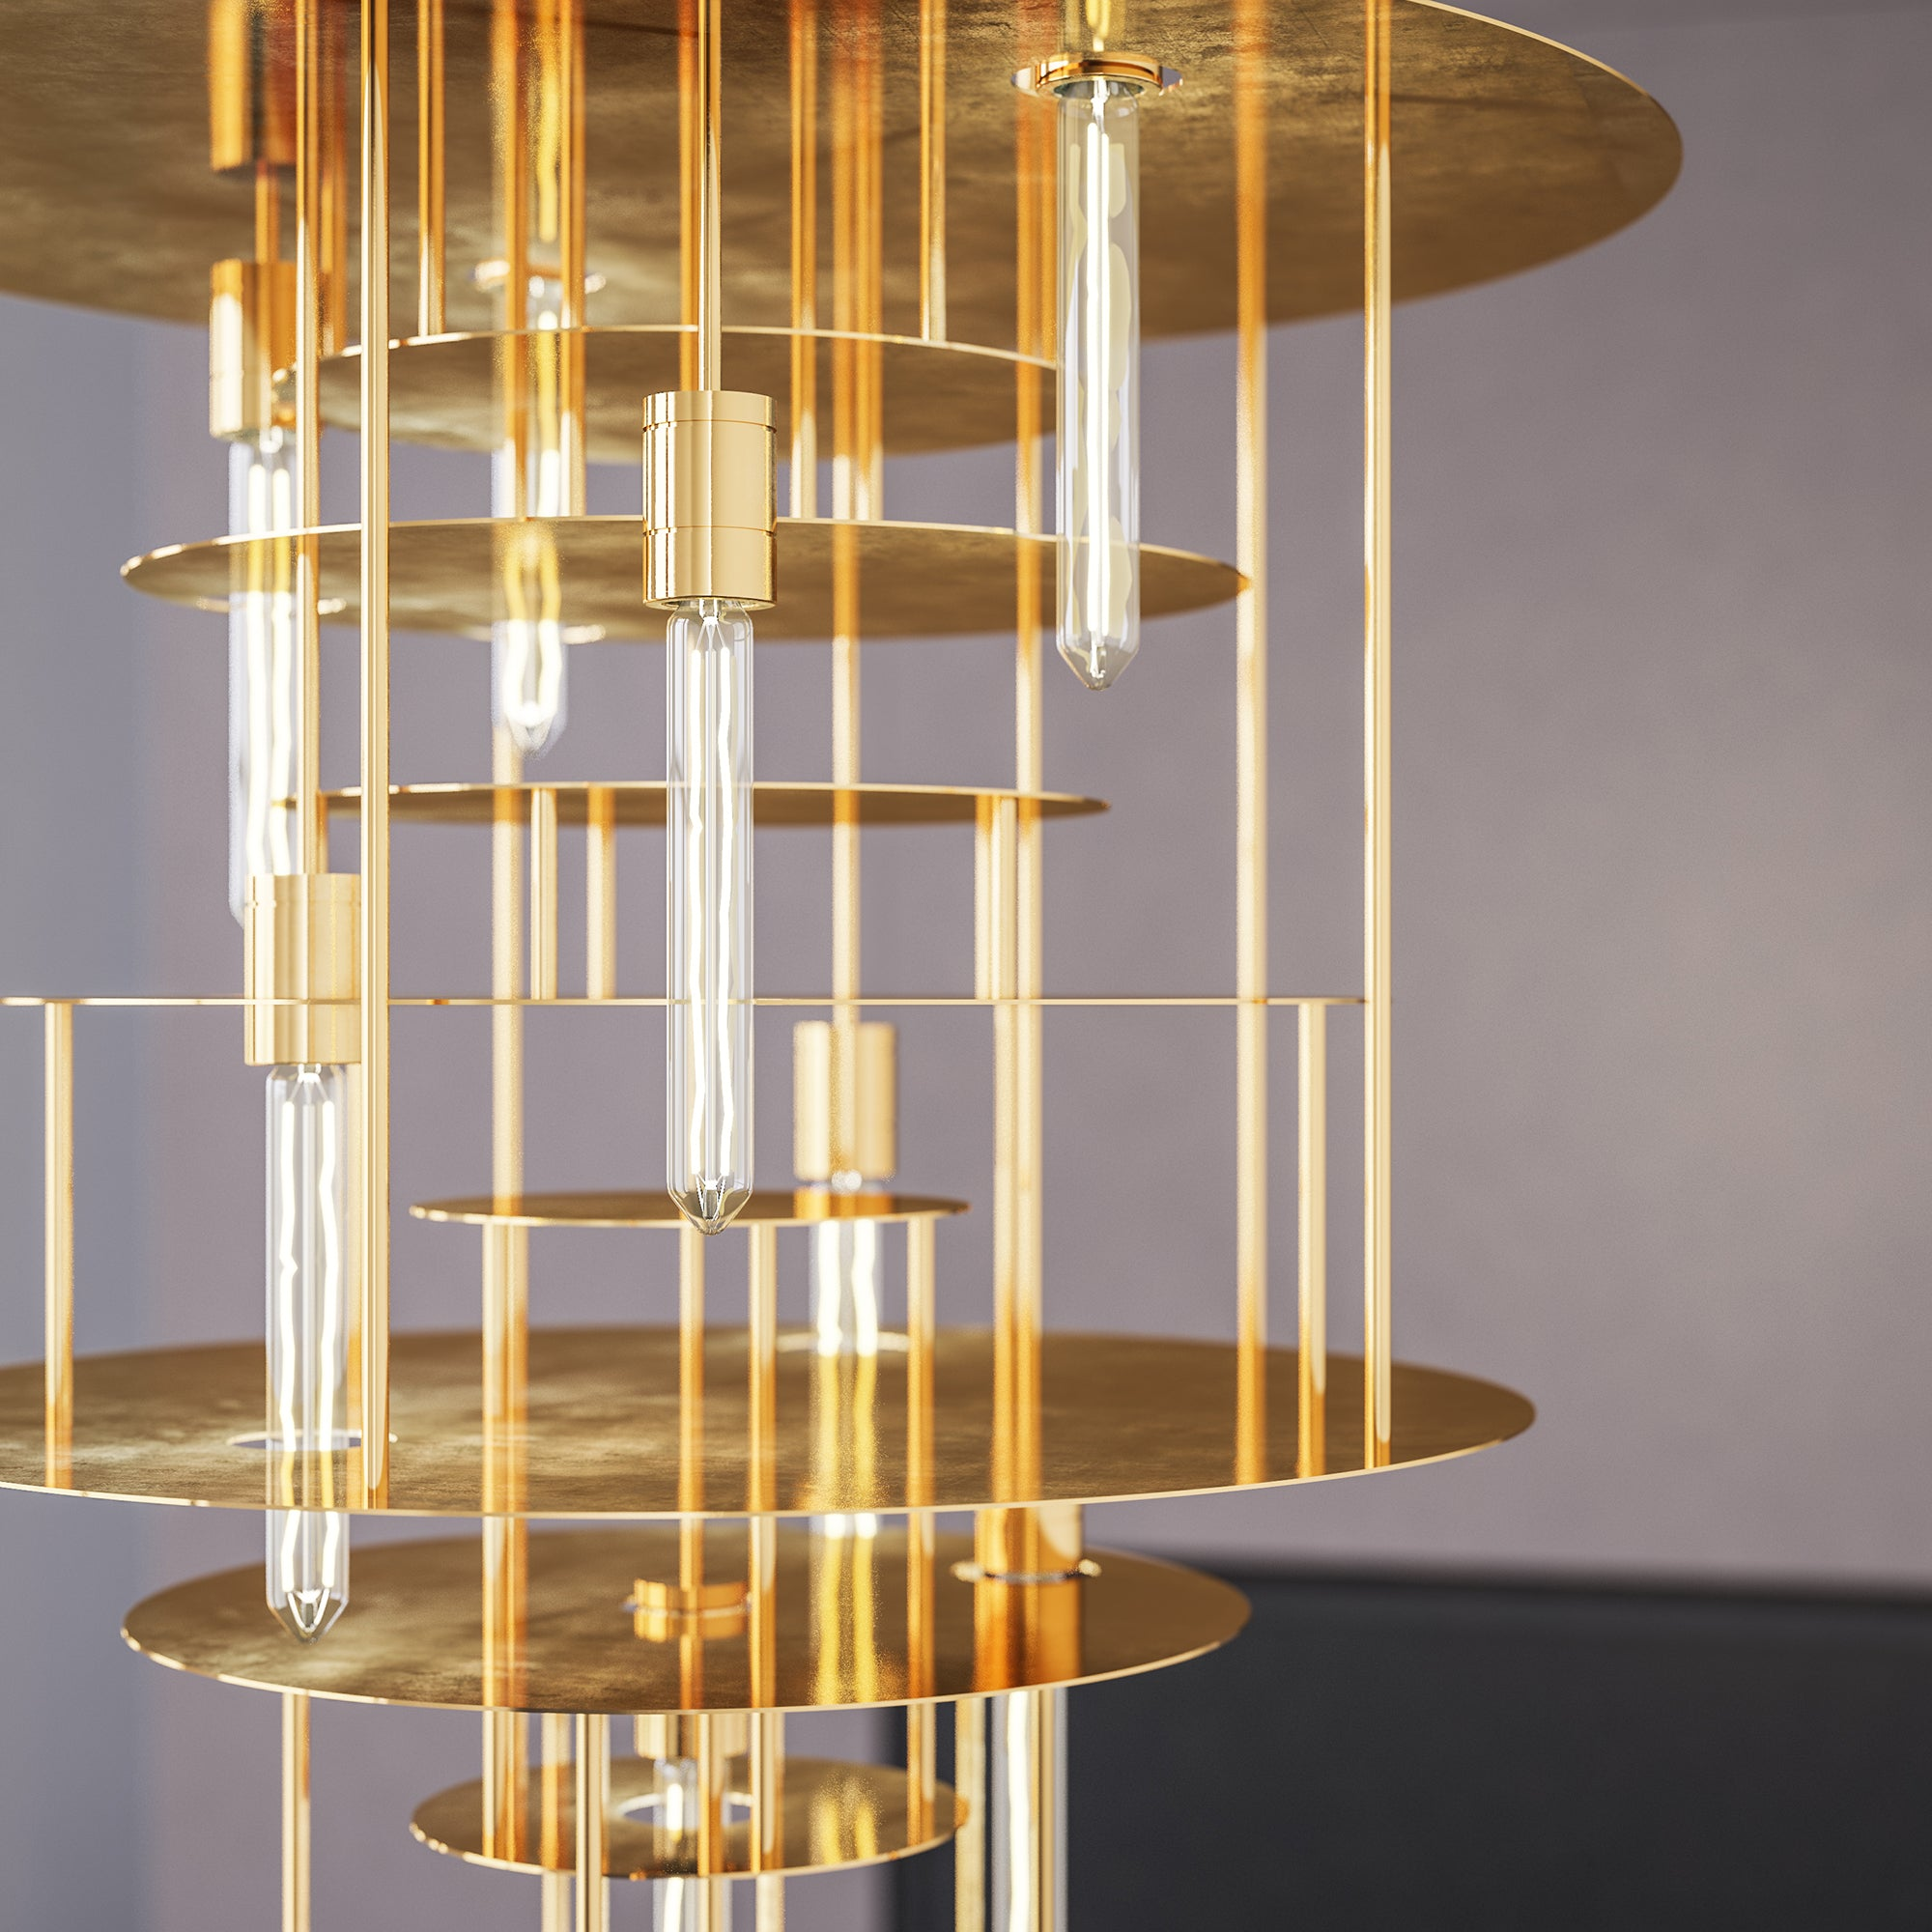 Cameron Design House New York Chandelier Lighting